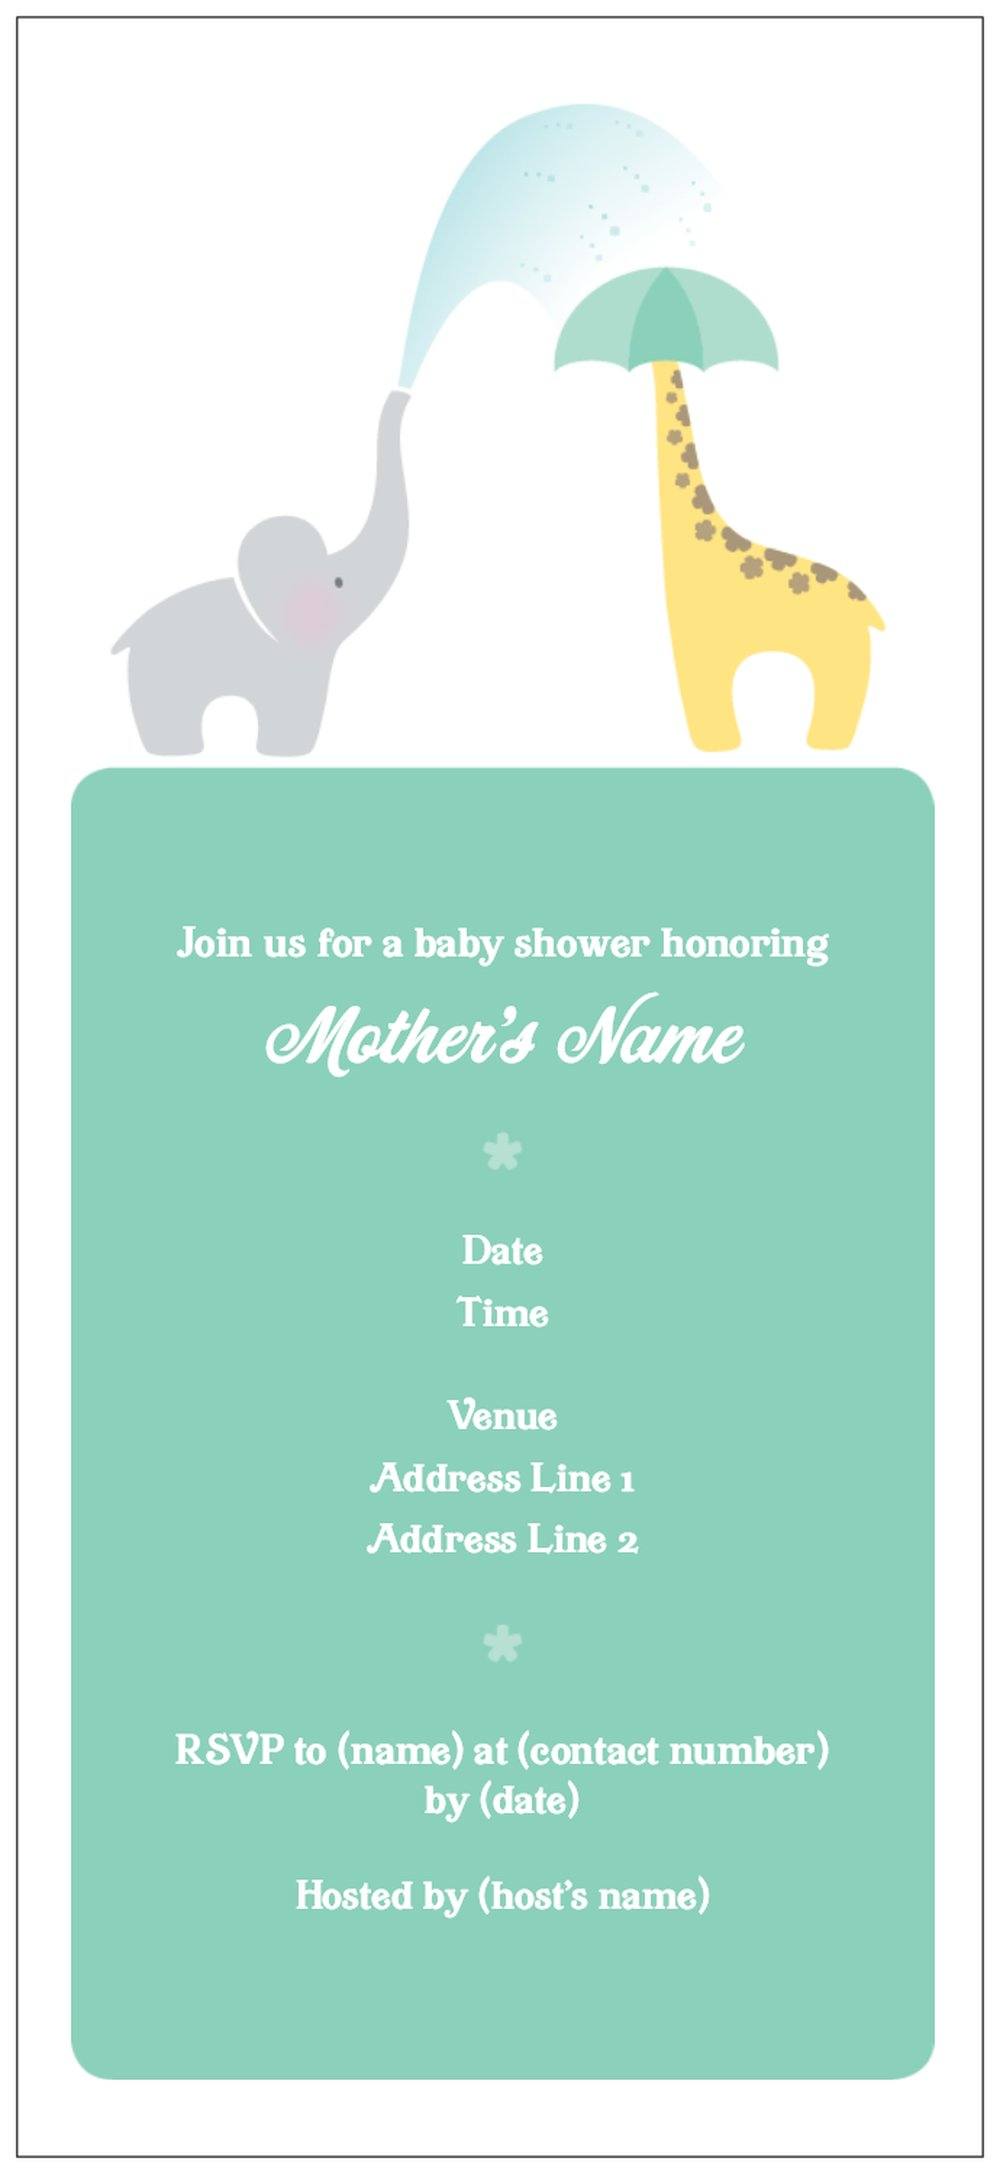 Vistaprint Baby Shower Invitations and get inspiration to create nice invitation ideas